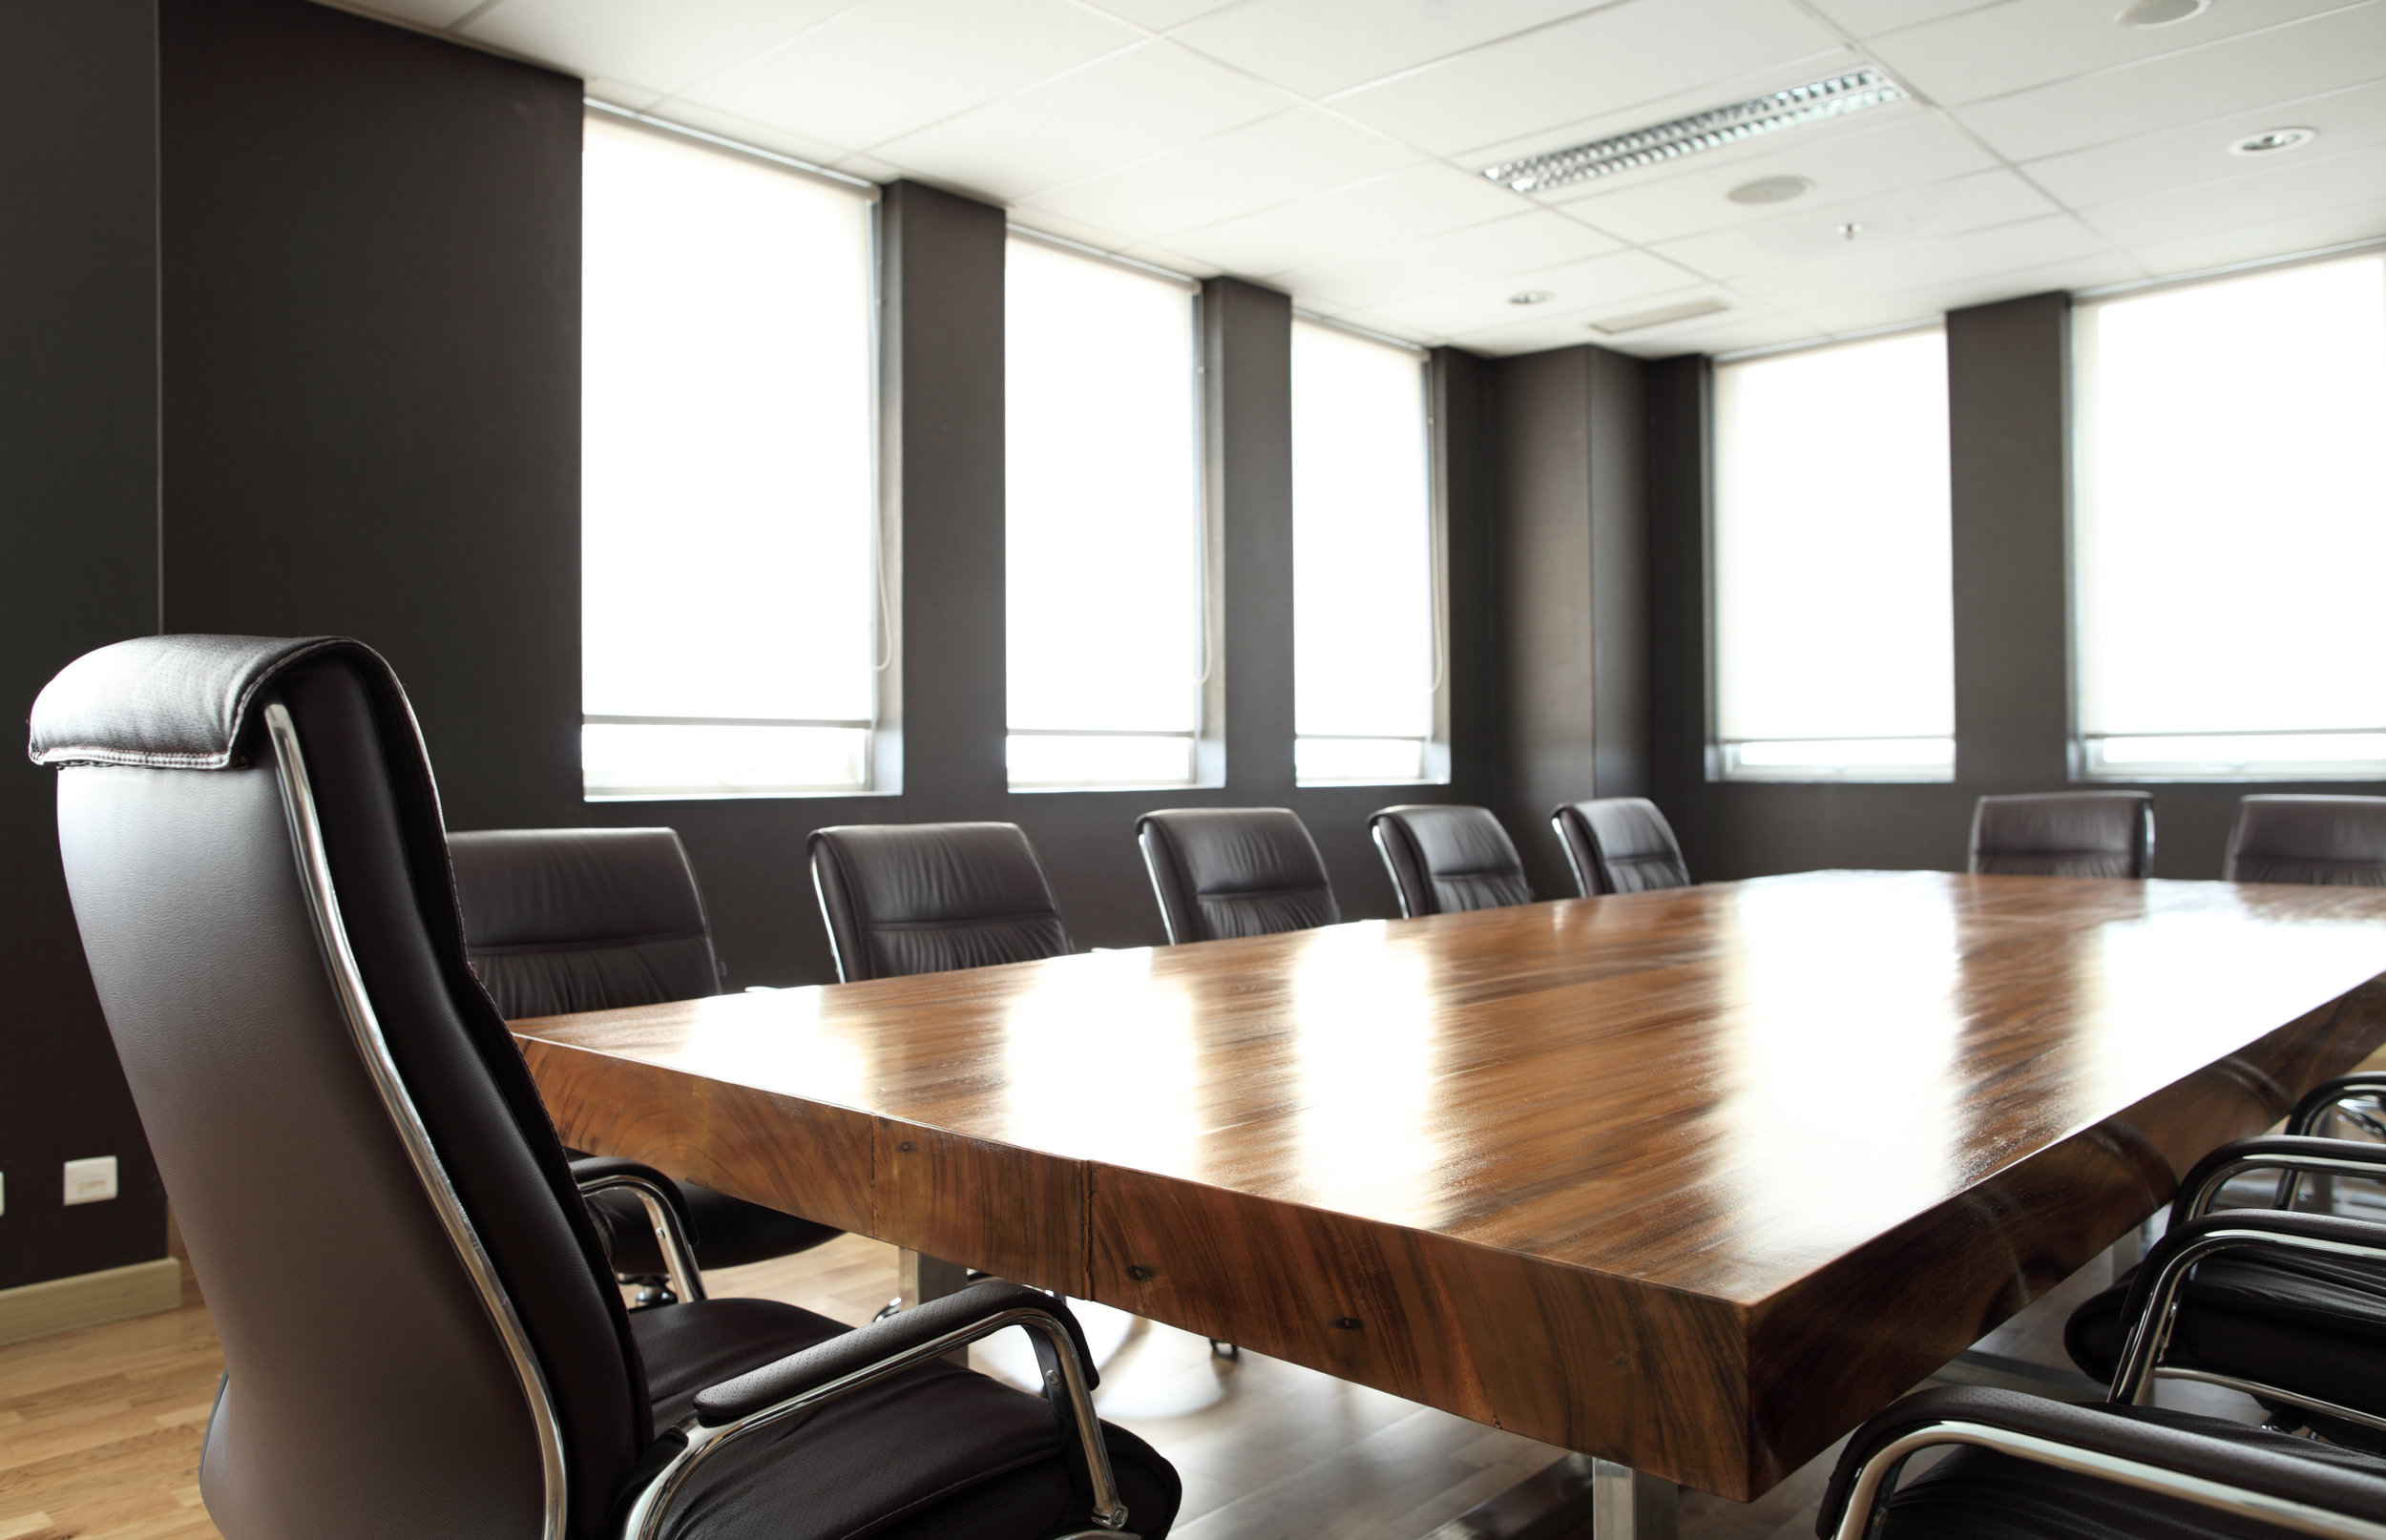 Access To Conference Rooms - No matter how you rent, reserve any of our professional, spacious rooms to host meetings or events. We make it easy to bring the people and ideas you need together.